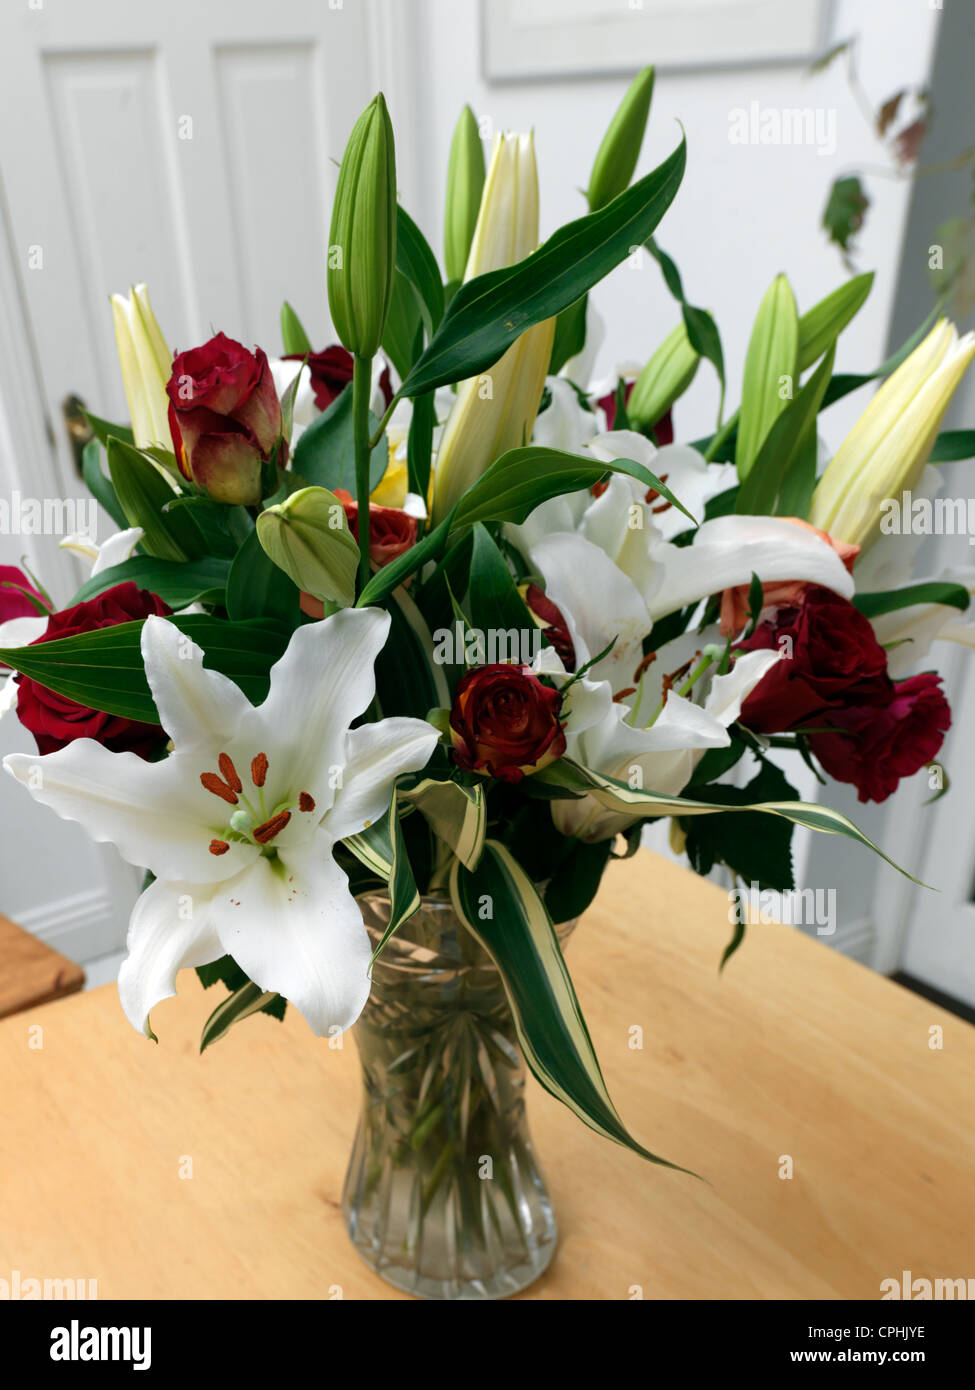 Bouquet Of Fairtrade Flowers Lillies And Roses In Vase On Kitchen ...